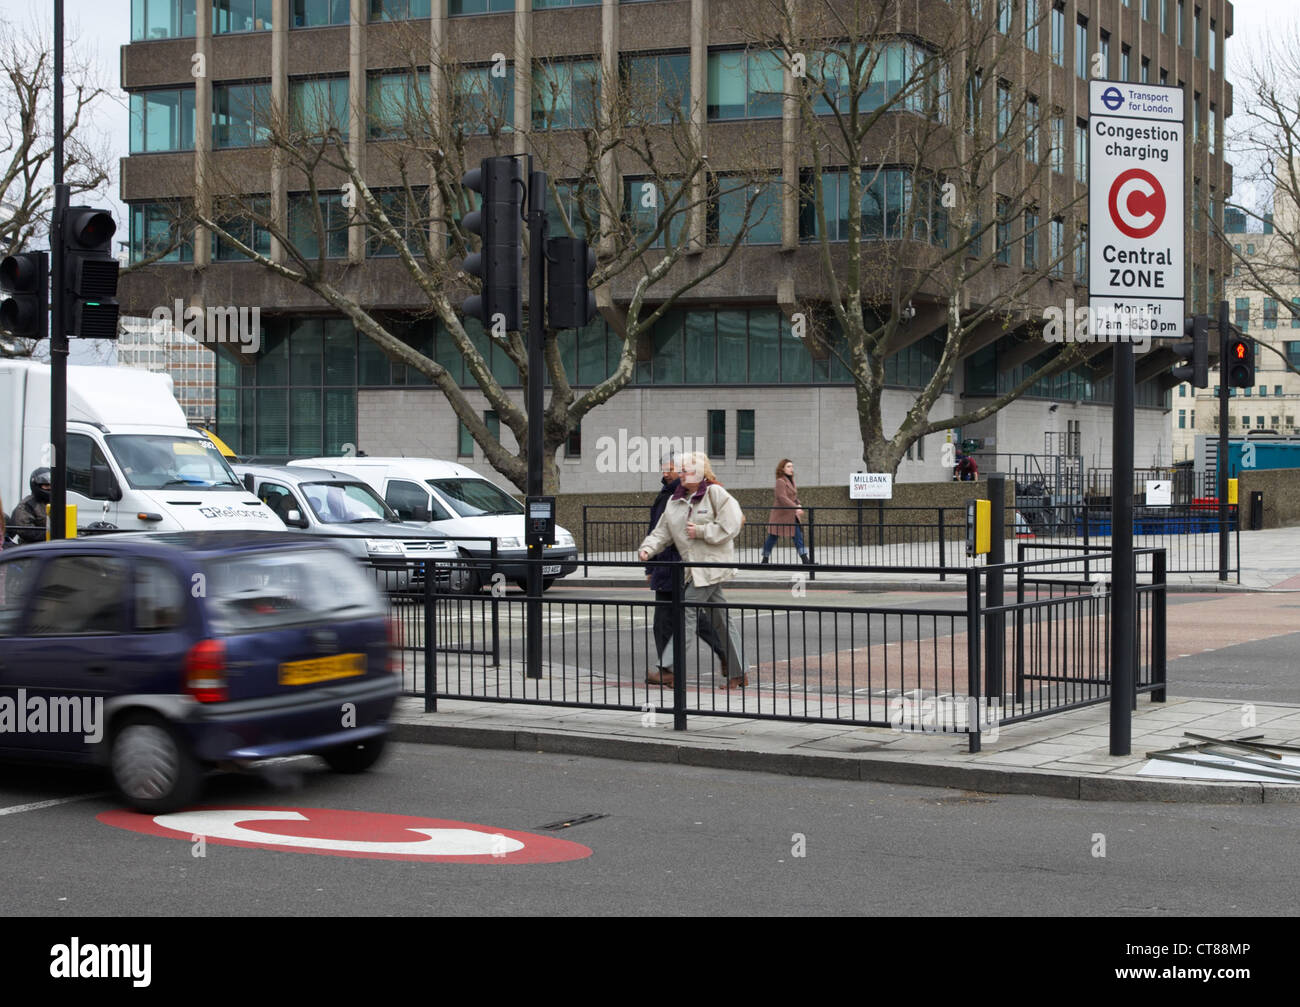 London - A car racing in the congestion charging zone - Stock Image